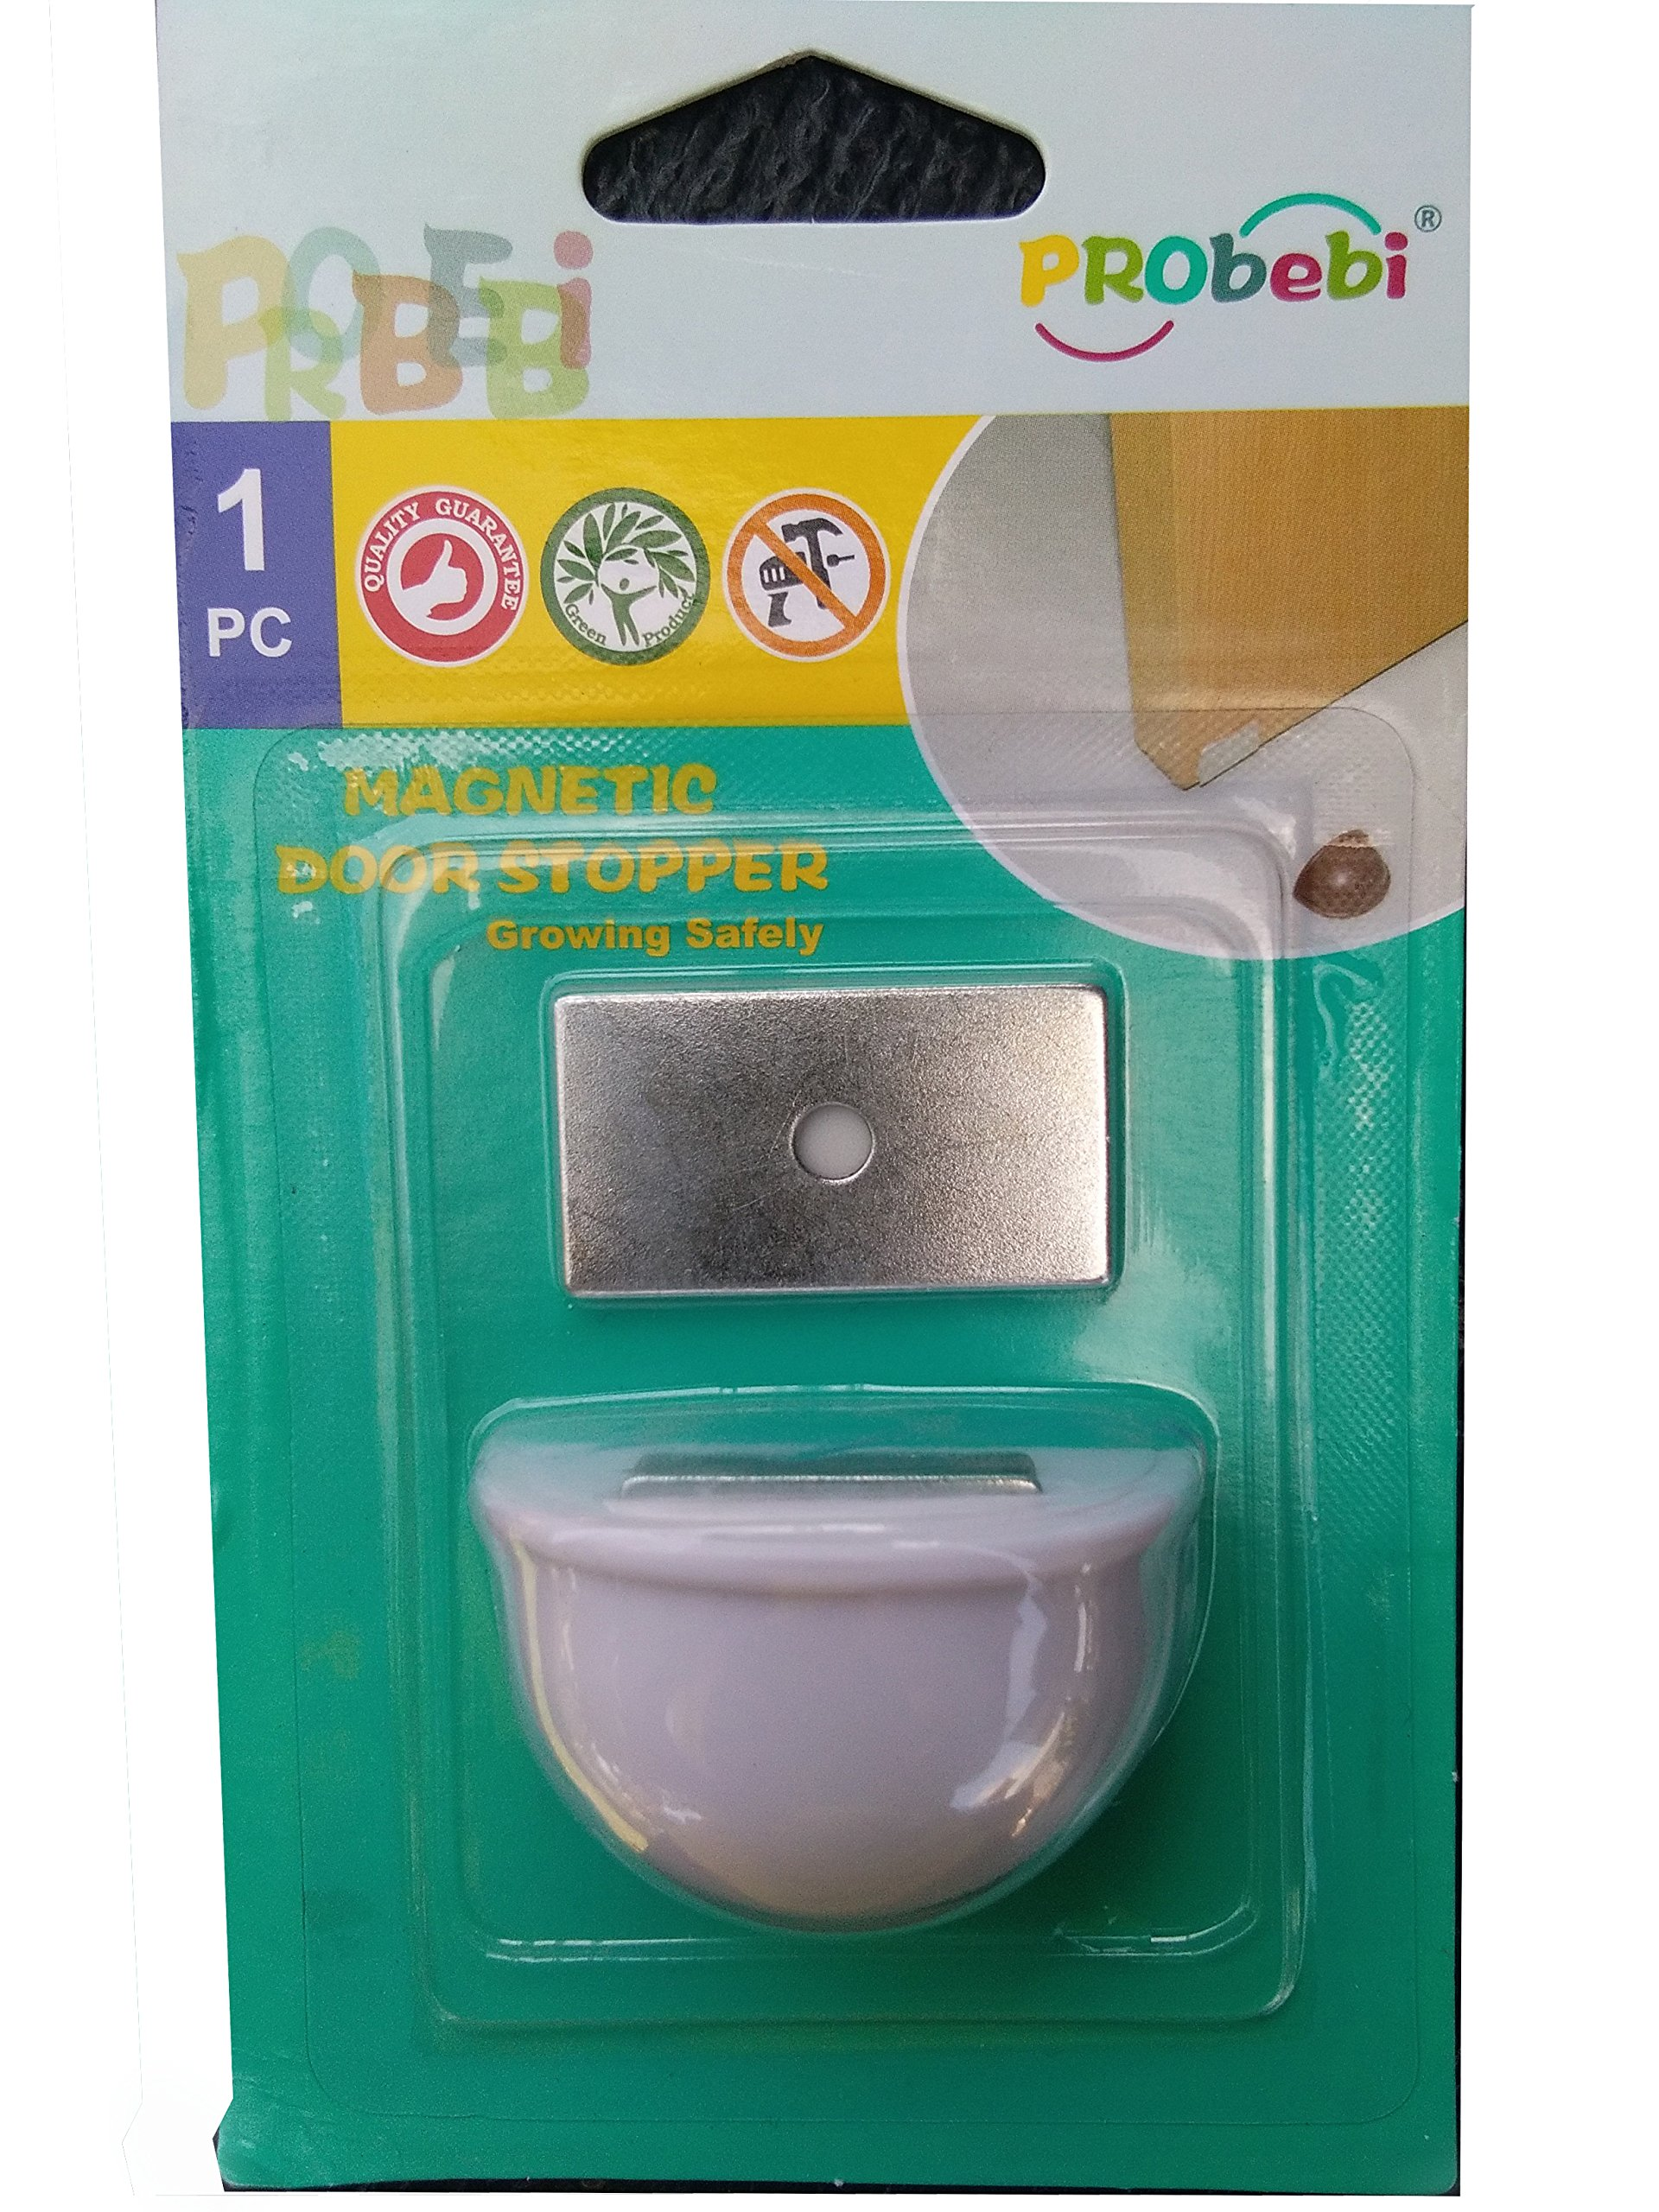 Magnetic Door Stopper Prevent Slamming Shut and Avoid Injuries Child's Lock with Two Sided Mounting Tape